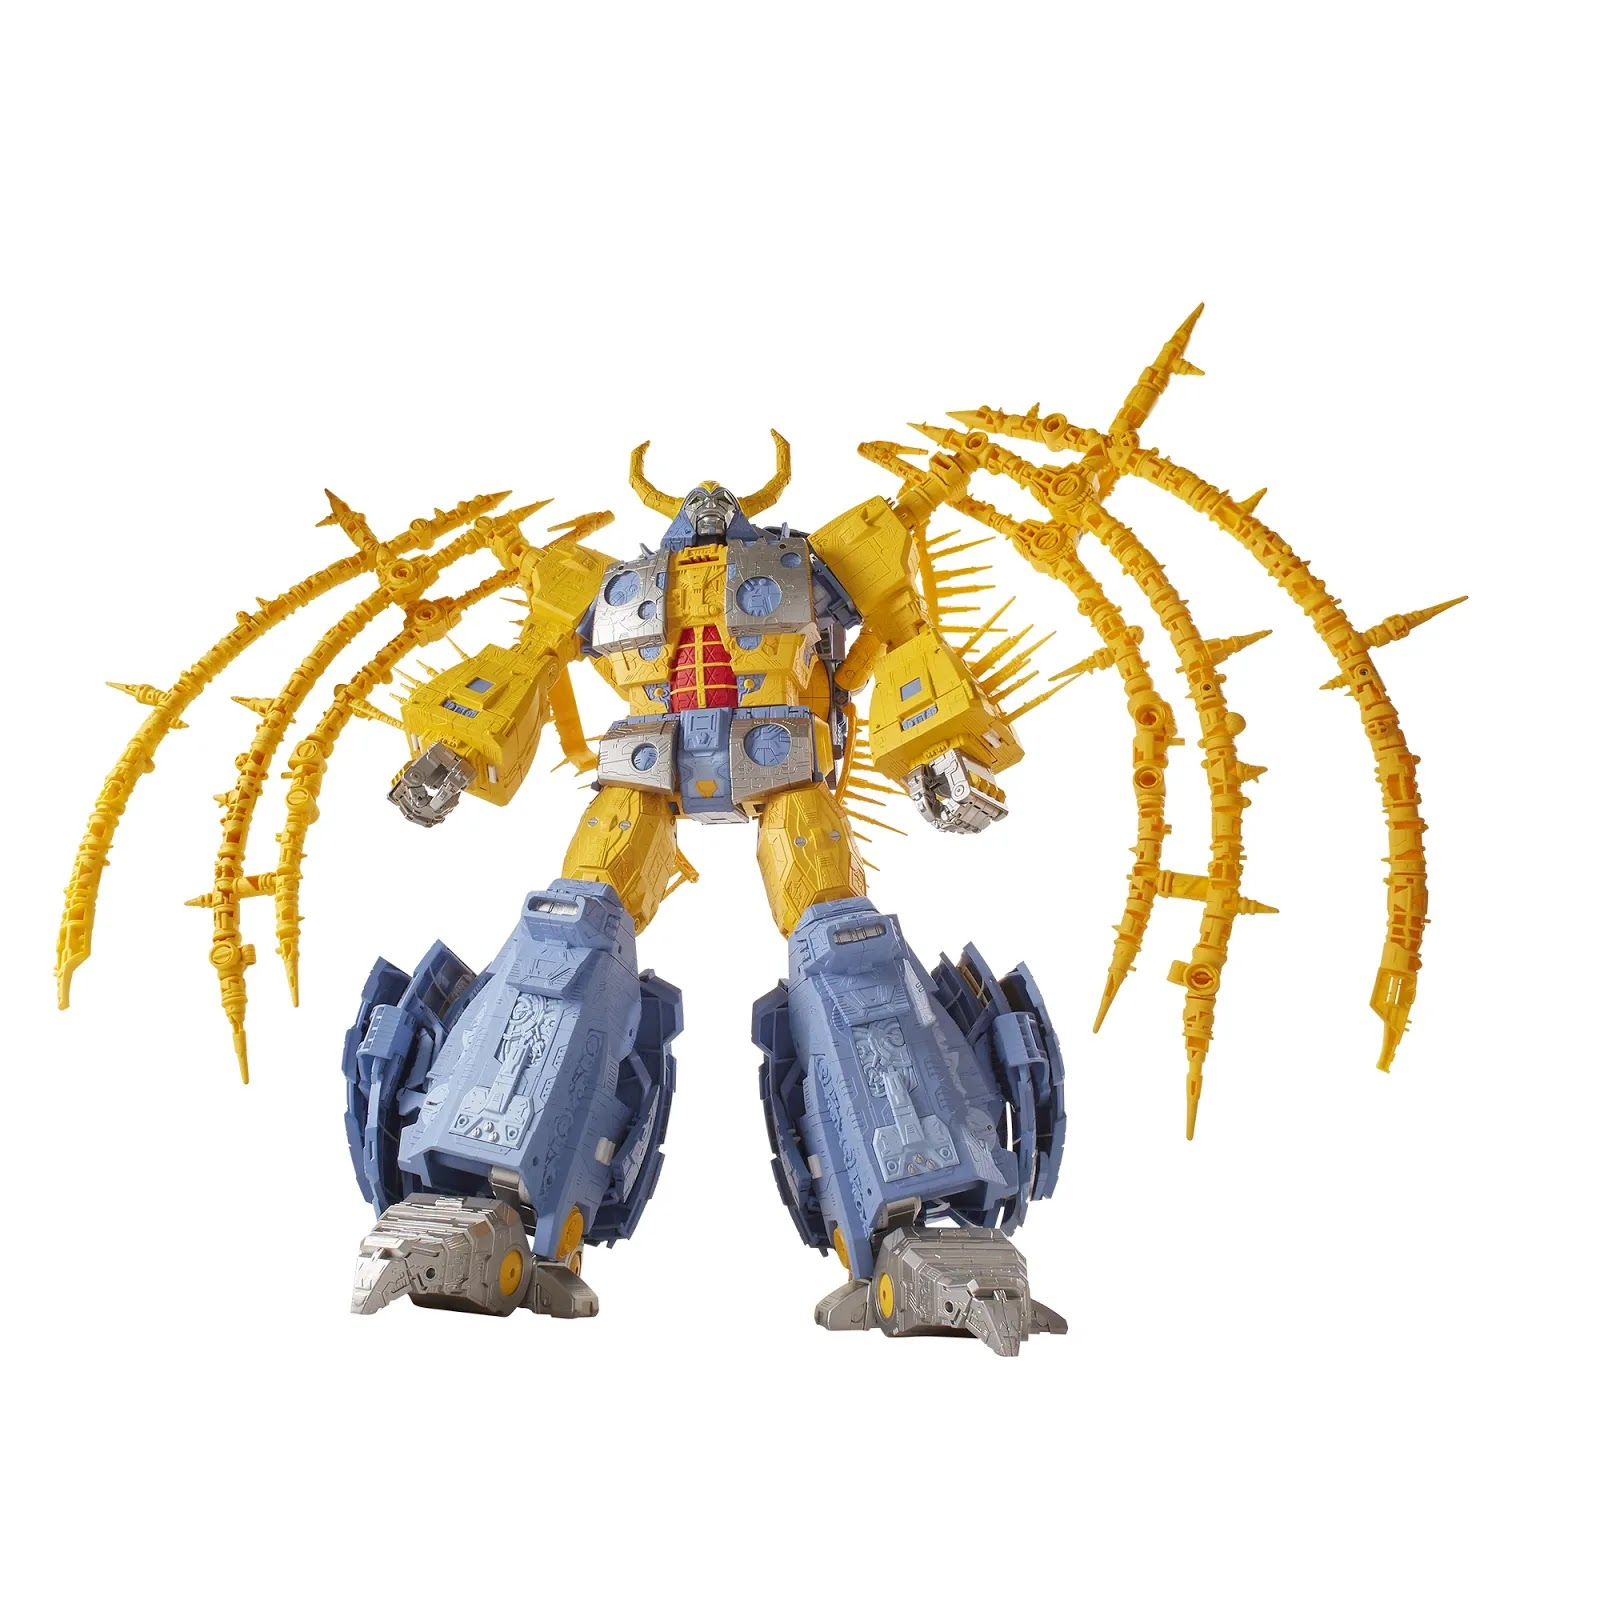 Collecting Toyz: Transformers: War For Cybertron Unicron